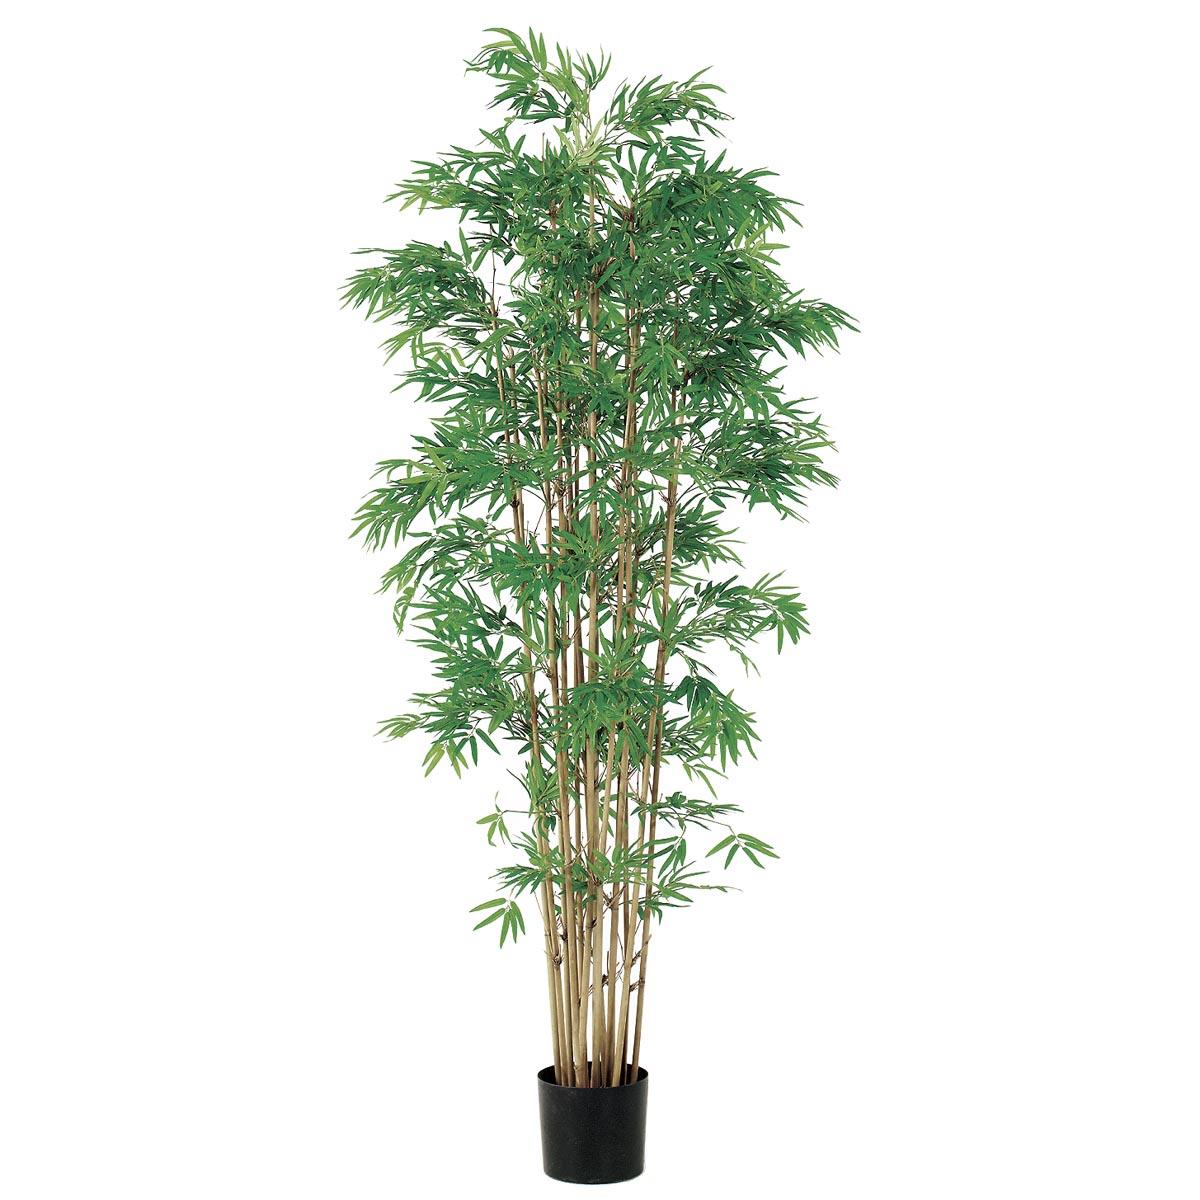 6 foot Japanese Bamboo Tree: Potted | LPB052-GR/TT